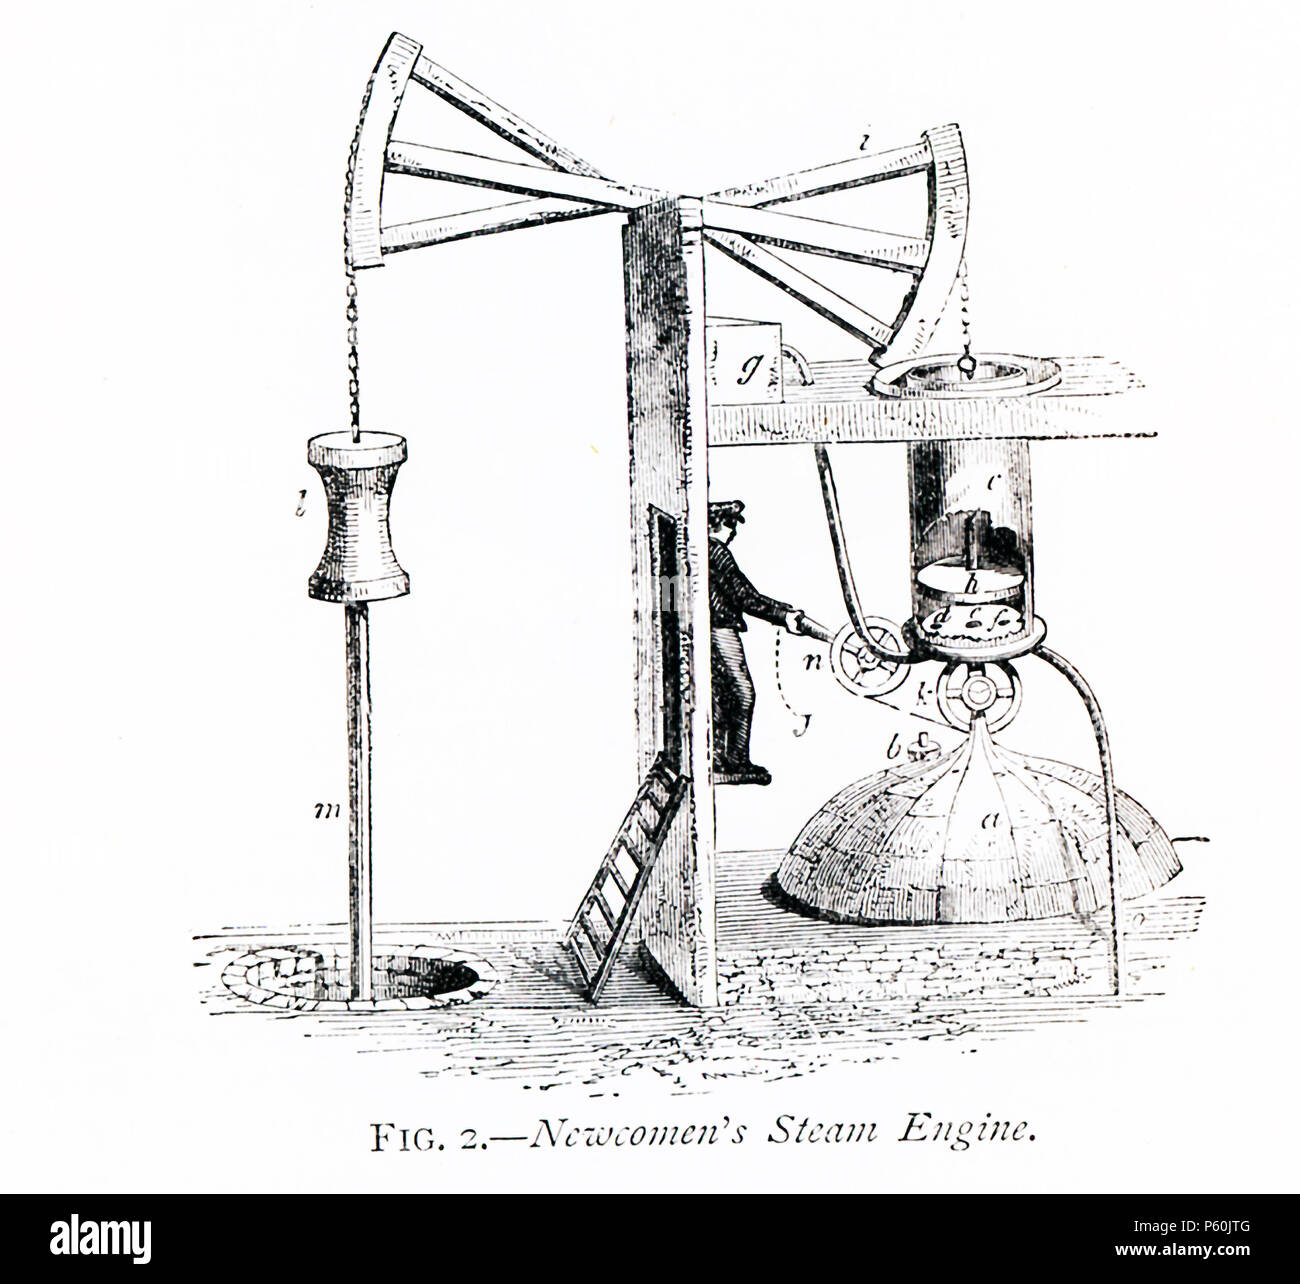 hight resolution of this 1870s illustration shows how newcomen s steam engine worked english inventor thomas newcomen 1664 1729 invented the first practical steam engine in